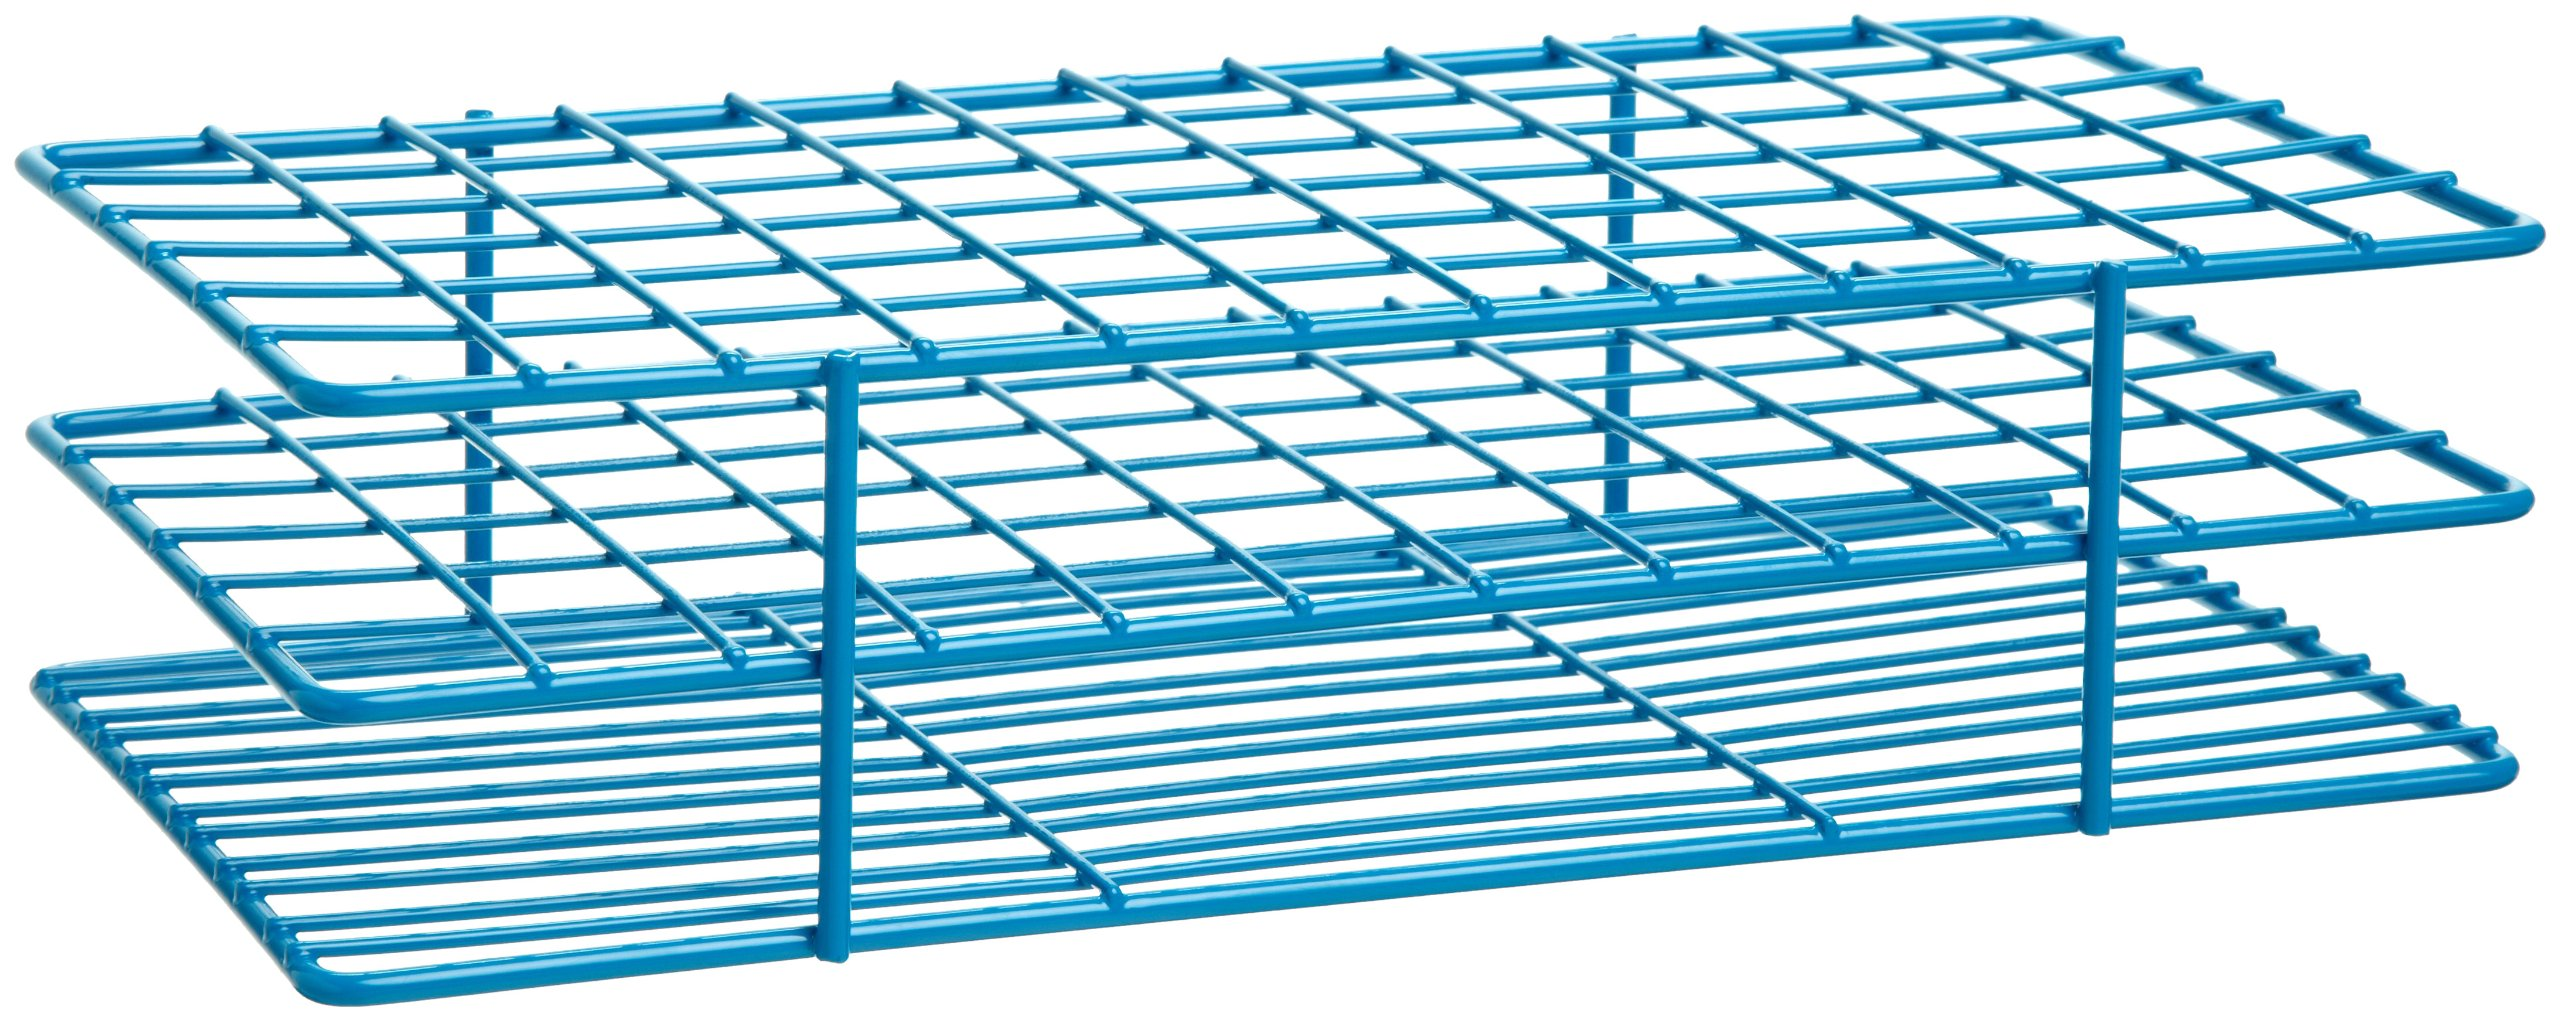 Bel-Art F18757-0001 Poxygrid Test Tube Rack; 13-16mm, 72 Places, 9¹/₂ x 5¹/₈ x 2¹/₂ in., Blue by SP Scienceware